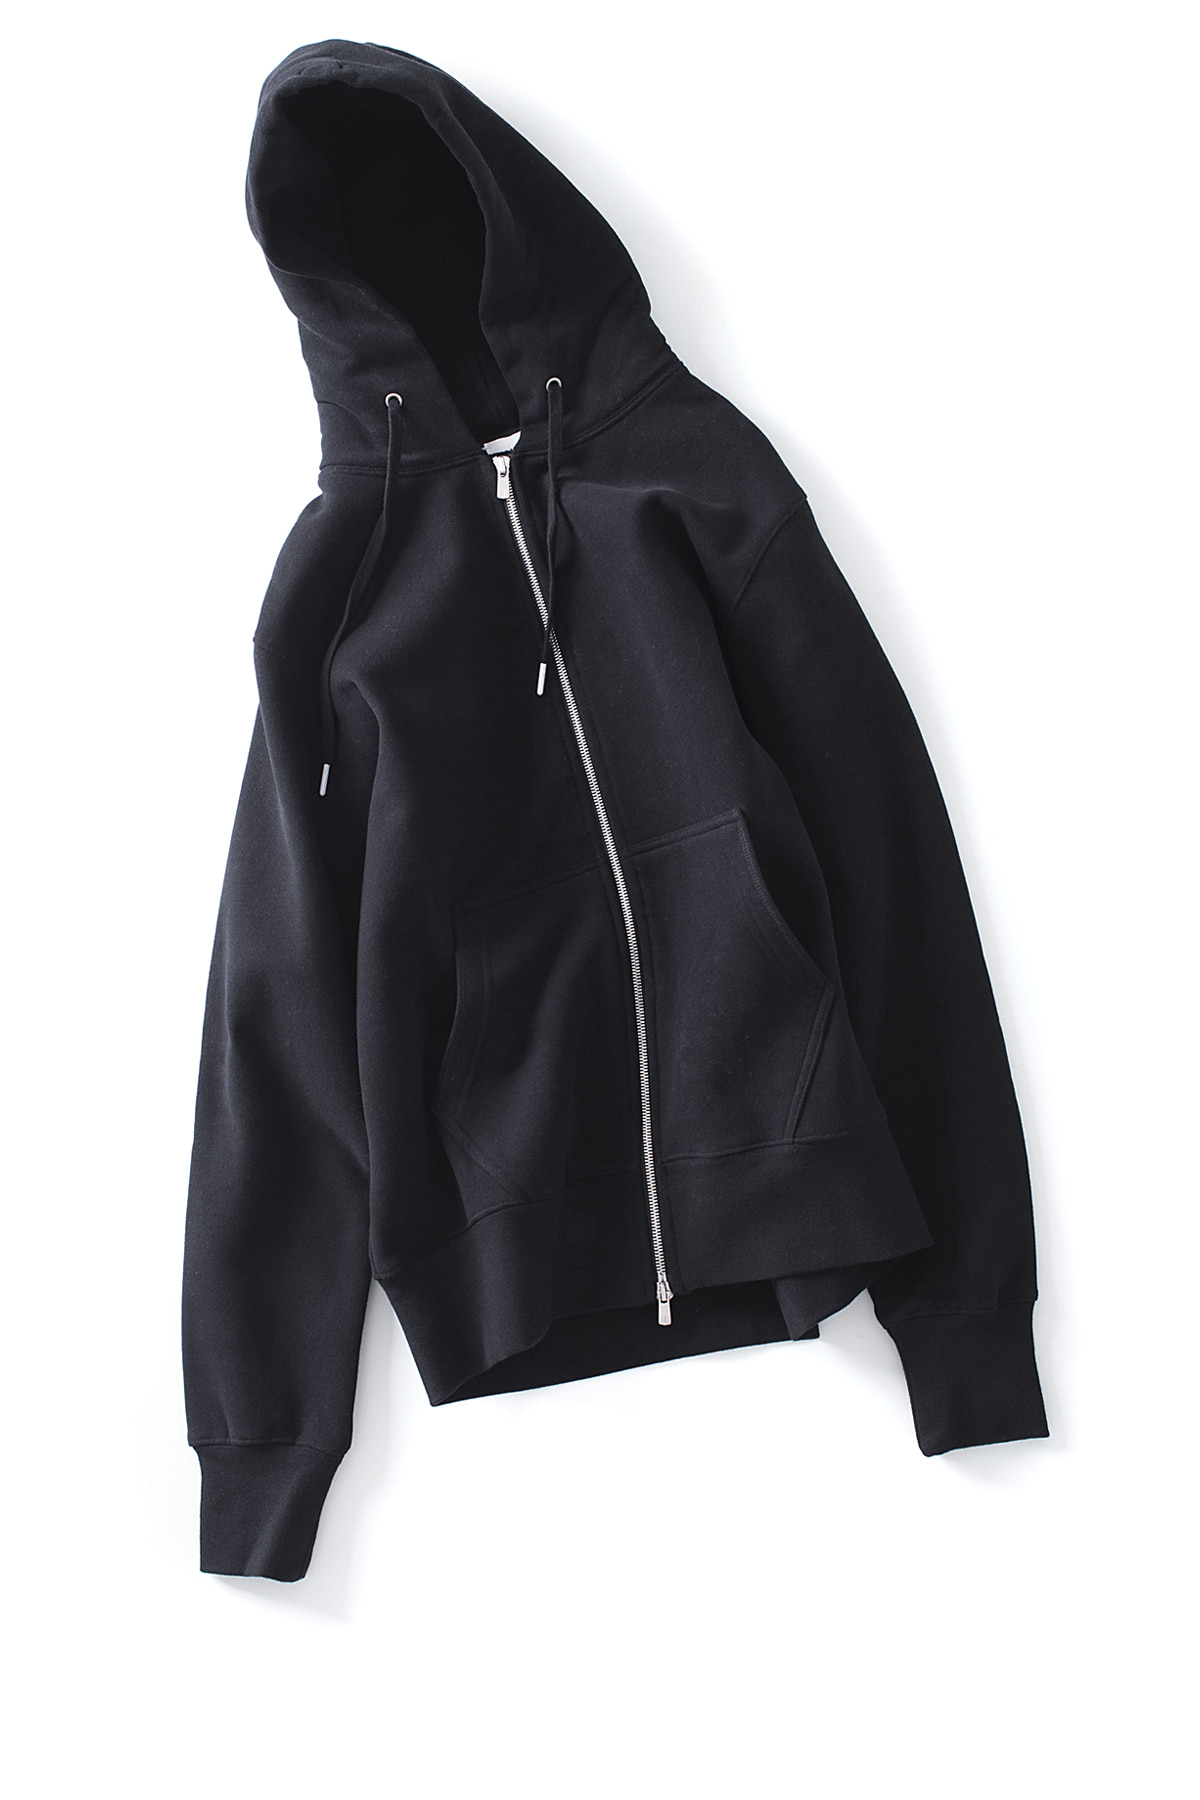 AECA WHITE : Zip Up Hoodie (Black)